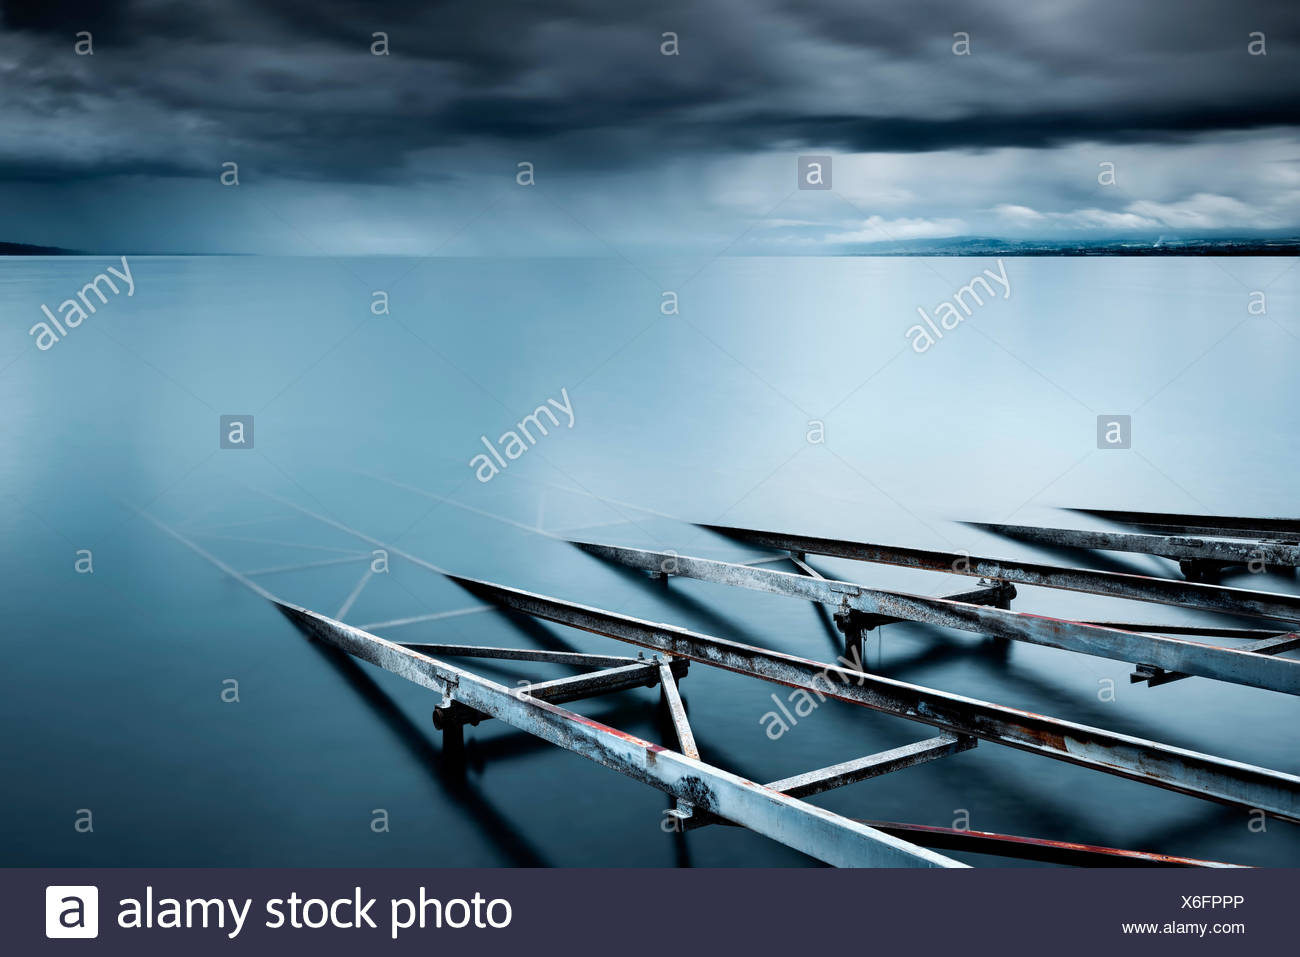 Switzerland, Vaud, Villette, Lake Leman, Slipway in still lake with storm clouds on horizon - Stock Image